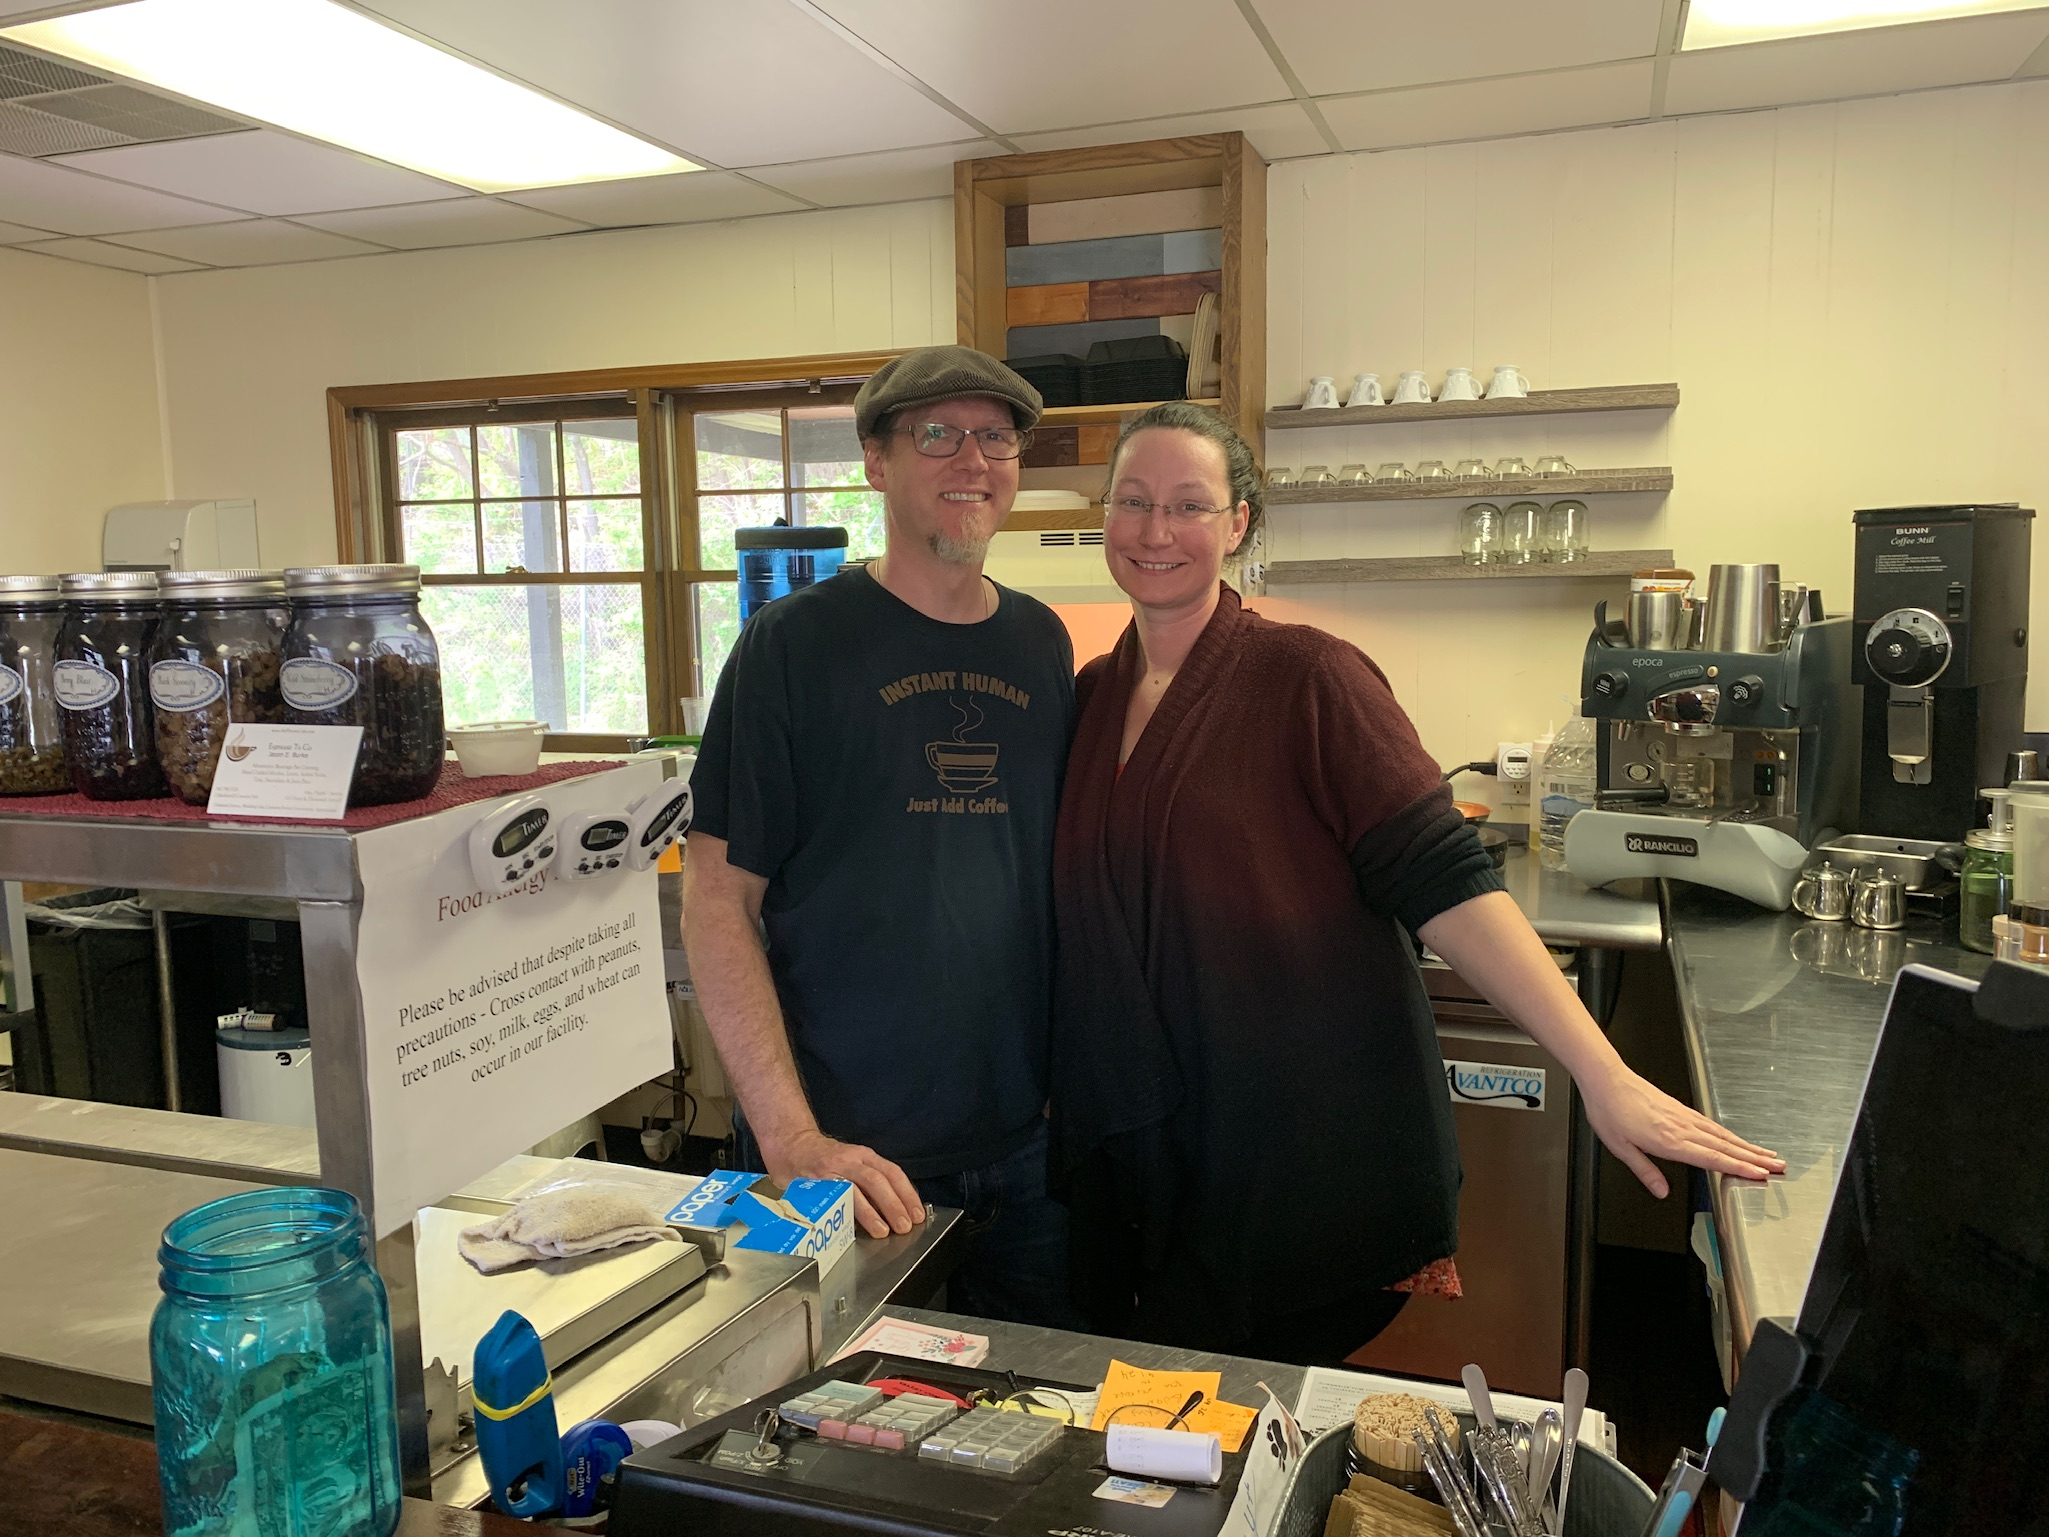 Café owners Jason and Sandy Burke moved to Buena Vista from Indianapolis a few years ago.